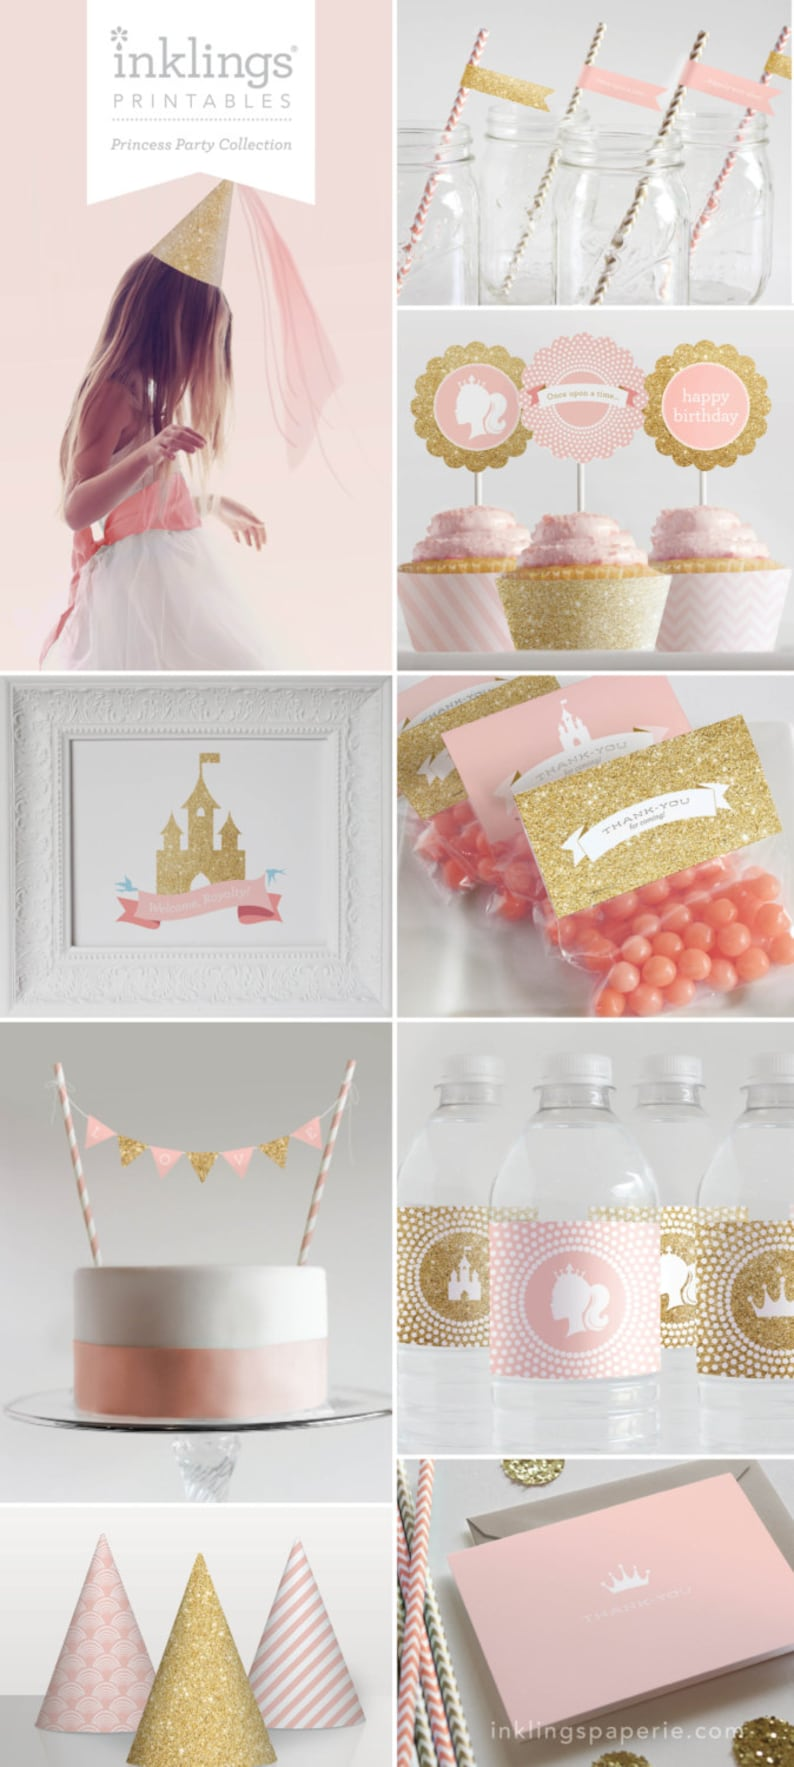 picture regarding Princess Party Printable known as Princess Get together Printable Decorations // Birthday Social gathering, Women of all ages Birthday Get together, Initial Birthday Occasion // Red and Gold Glitter Selection